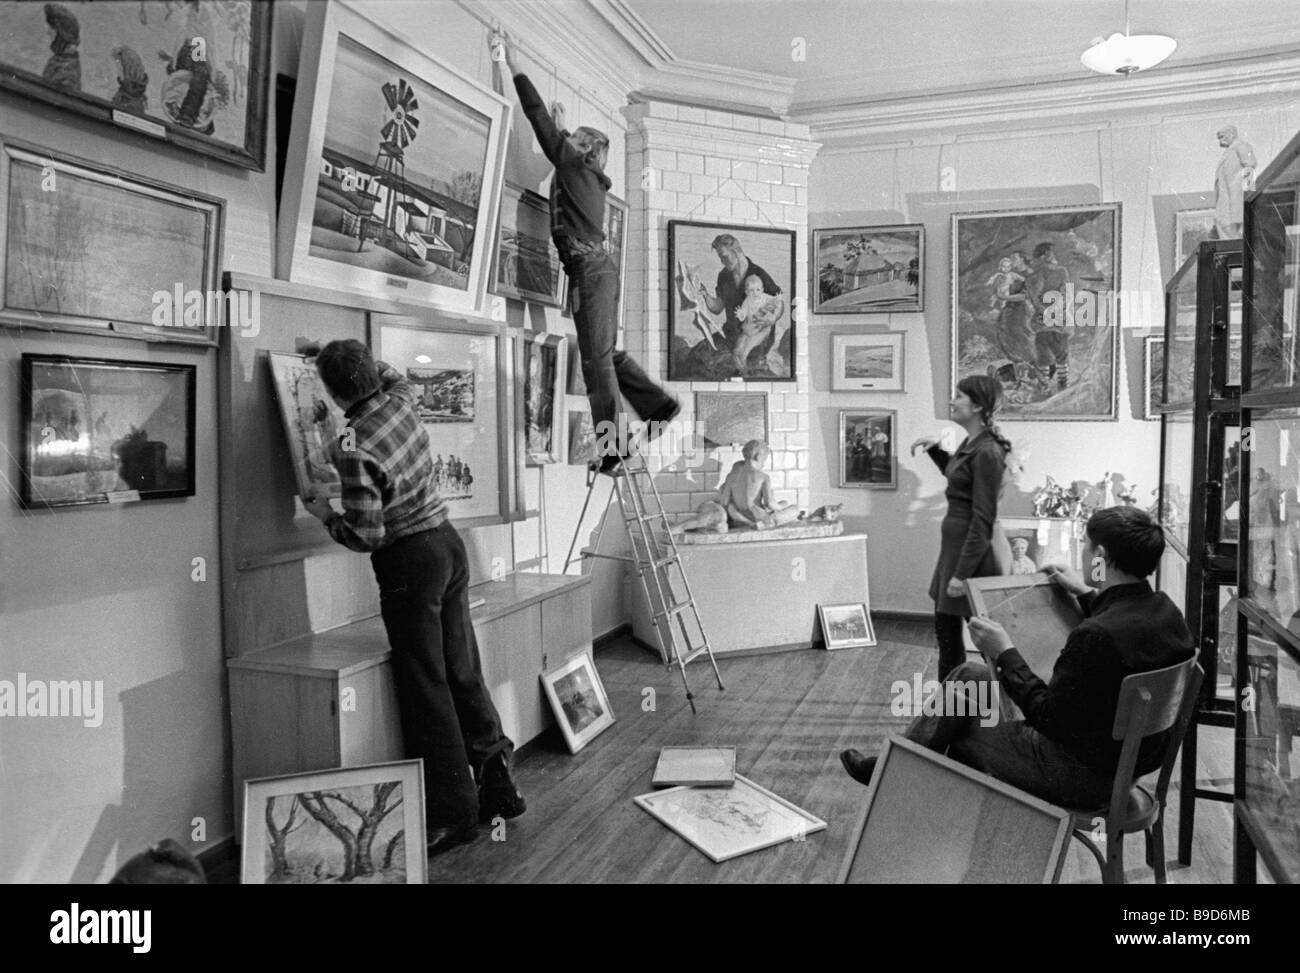 School Arts High Resolution Stock Photography And Images Alamy